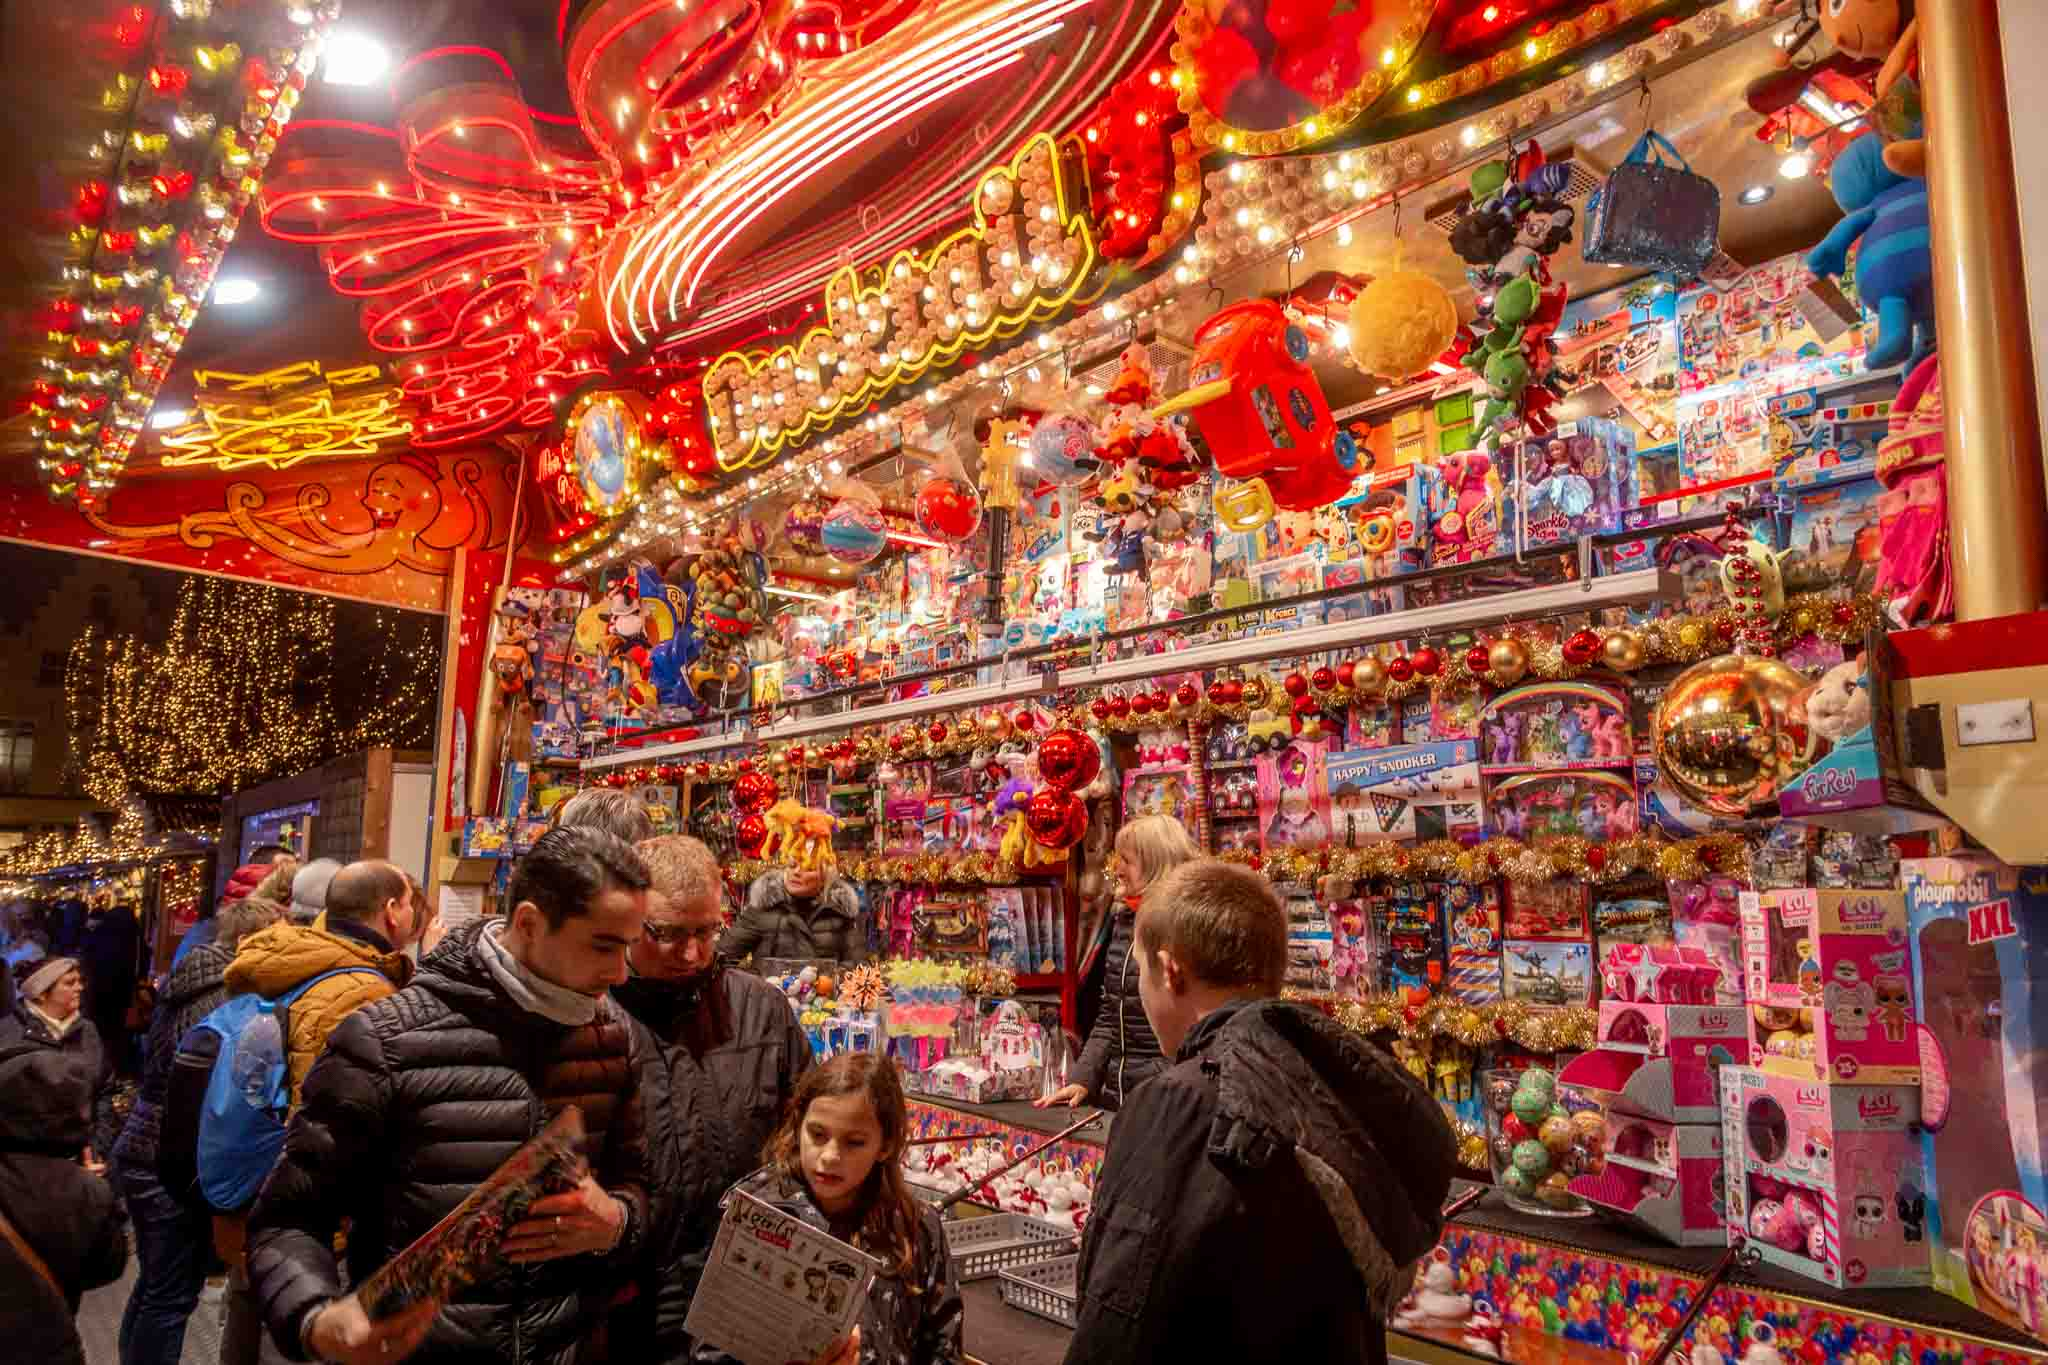 Shopping for toys at one of the brightly lit kiosks at the Bruge Christmas market in Belgium